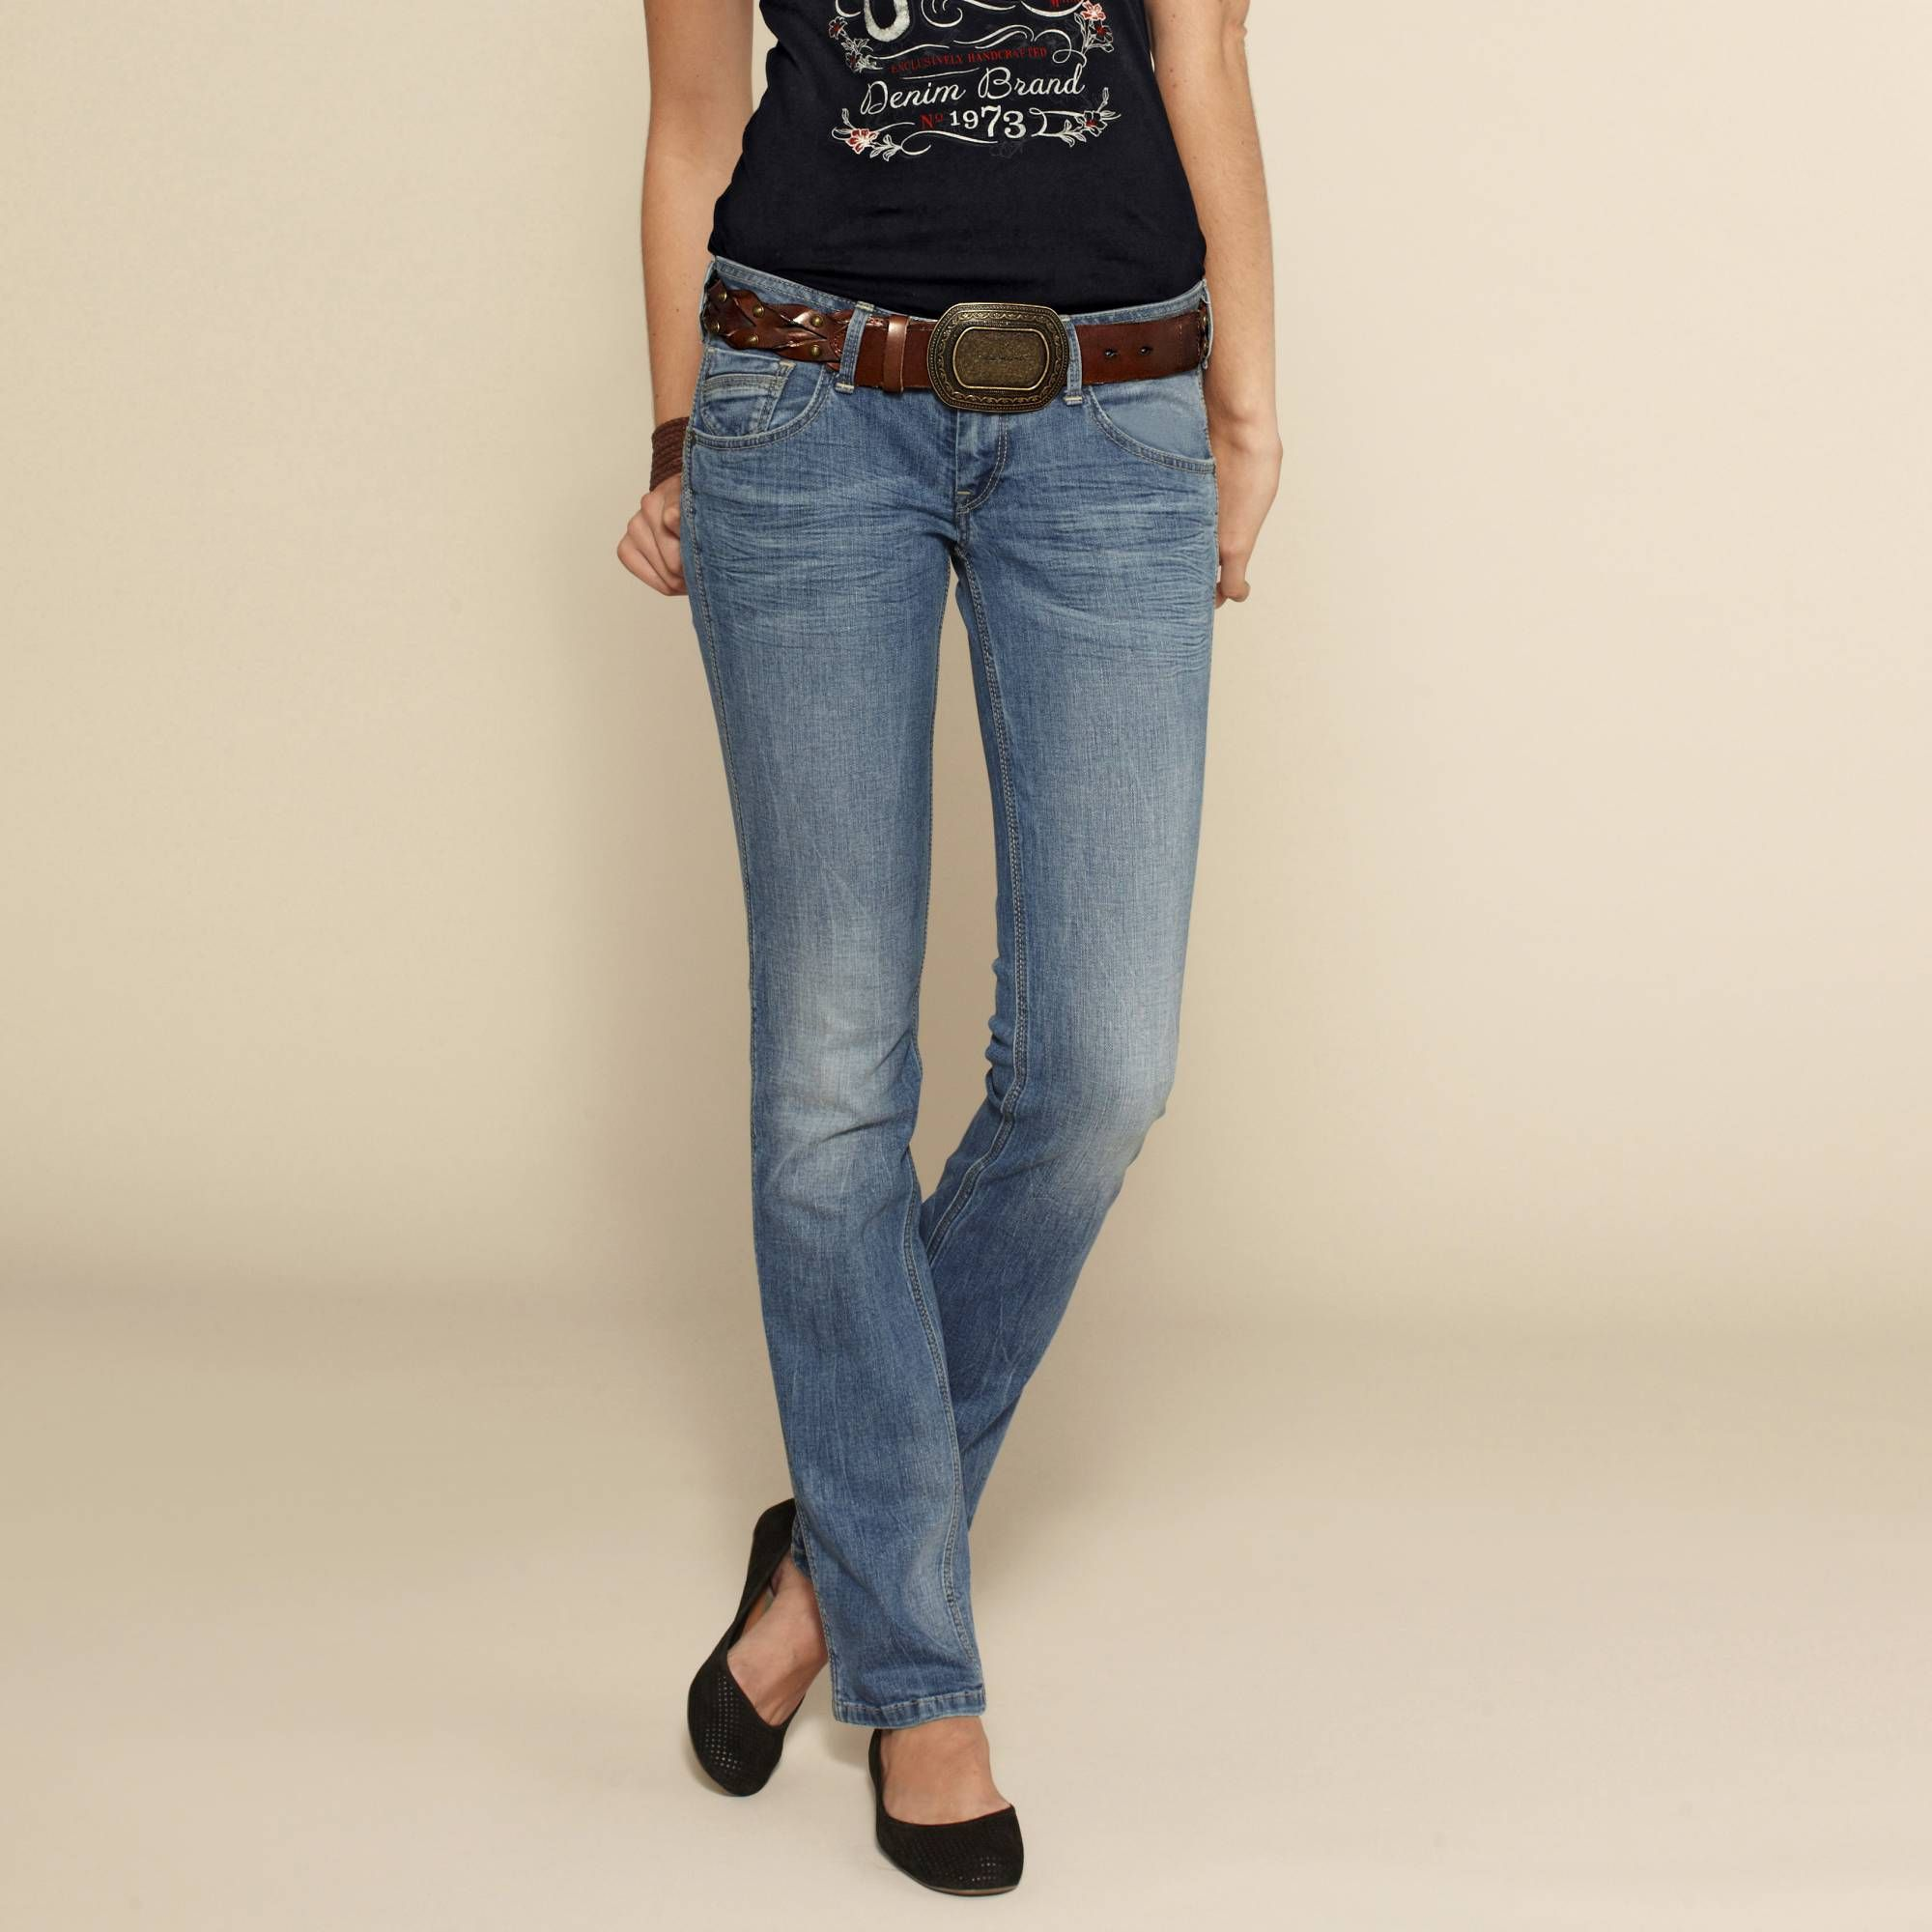 Jeans pepe jeans femme